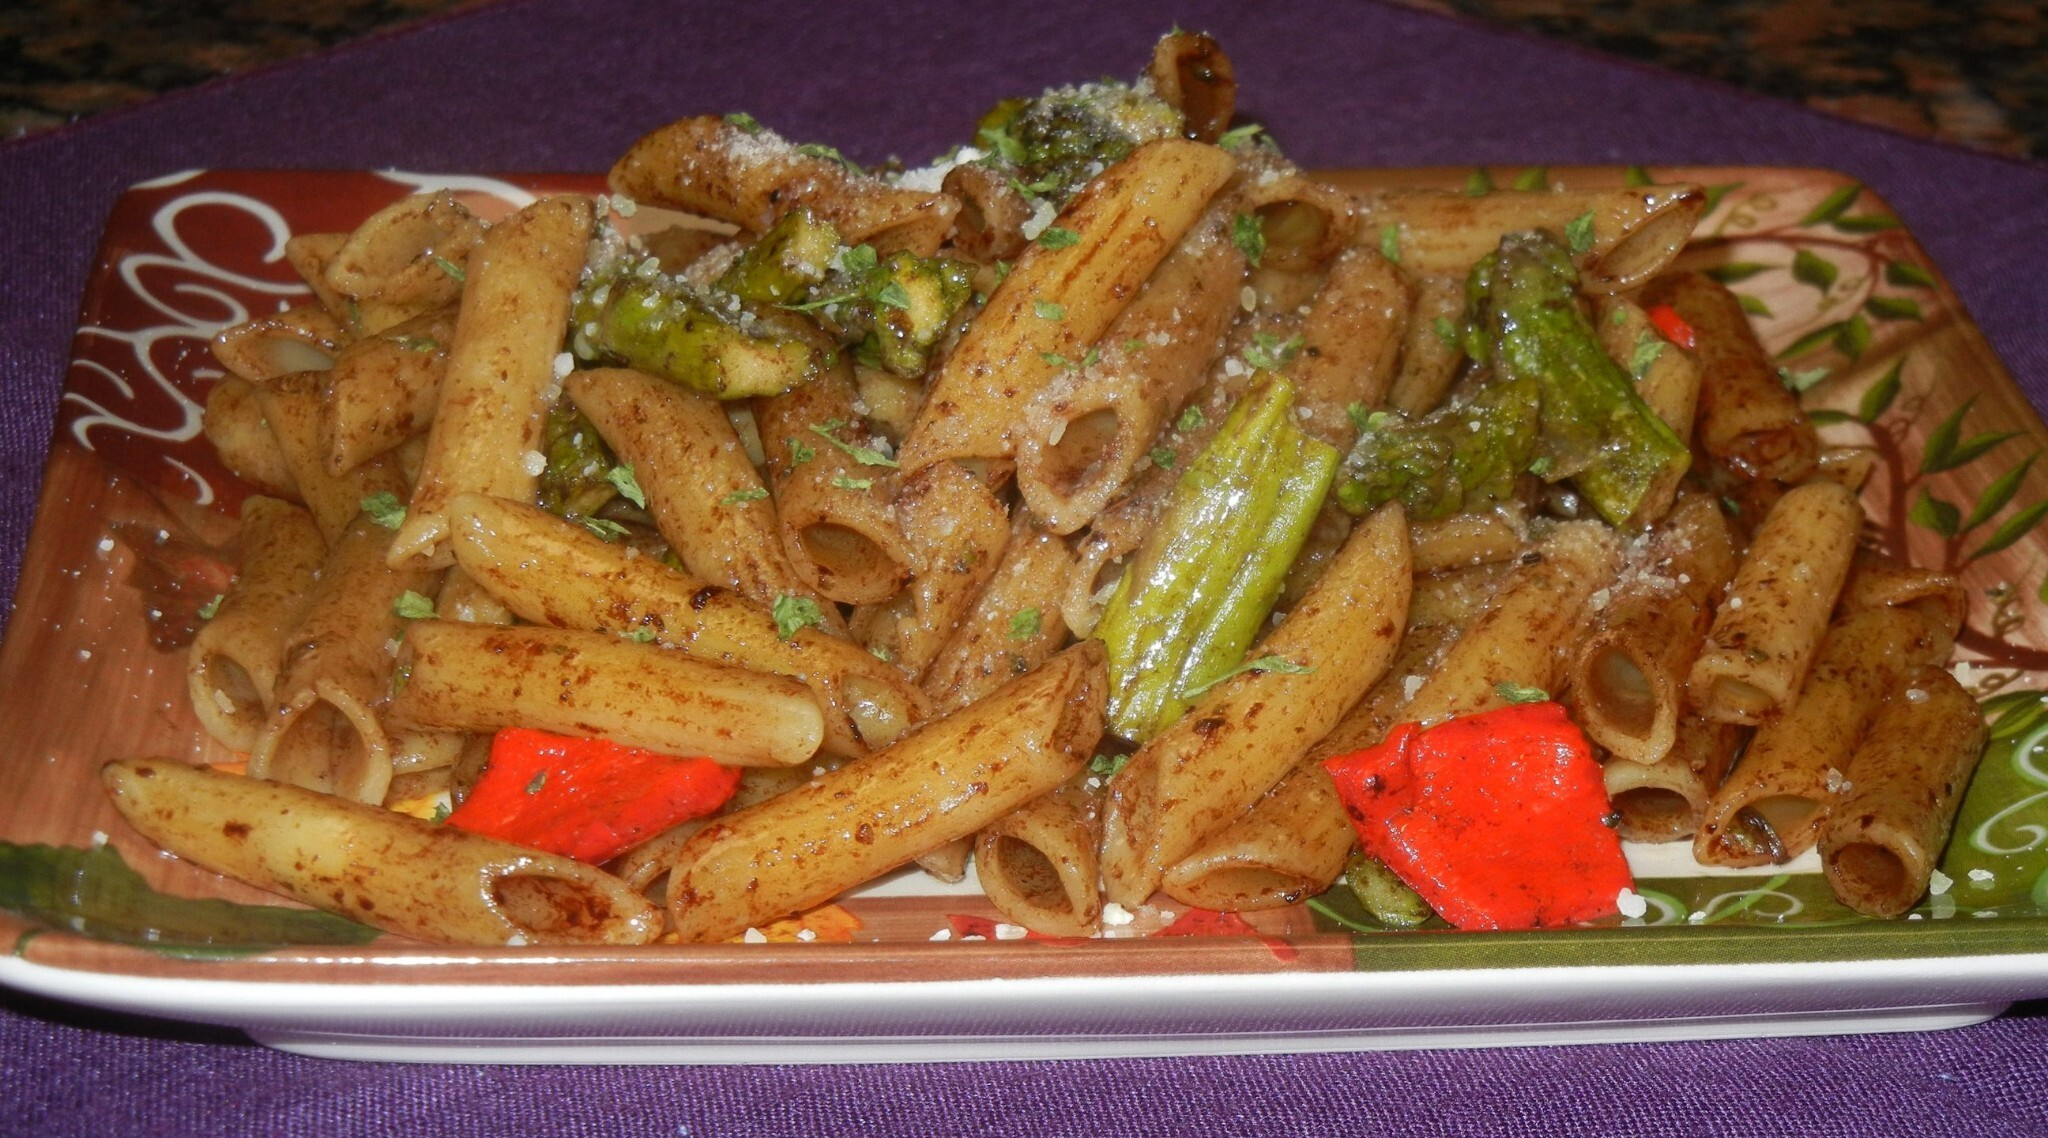 Penne Pasta with Roasted Asparagus, Red Pepper and Balsamic Butter